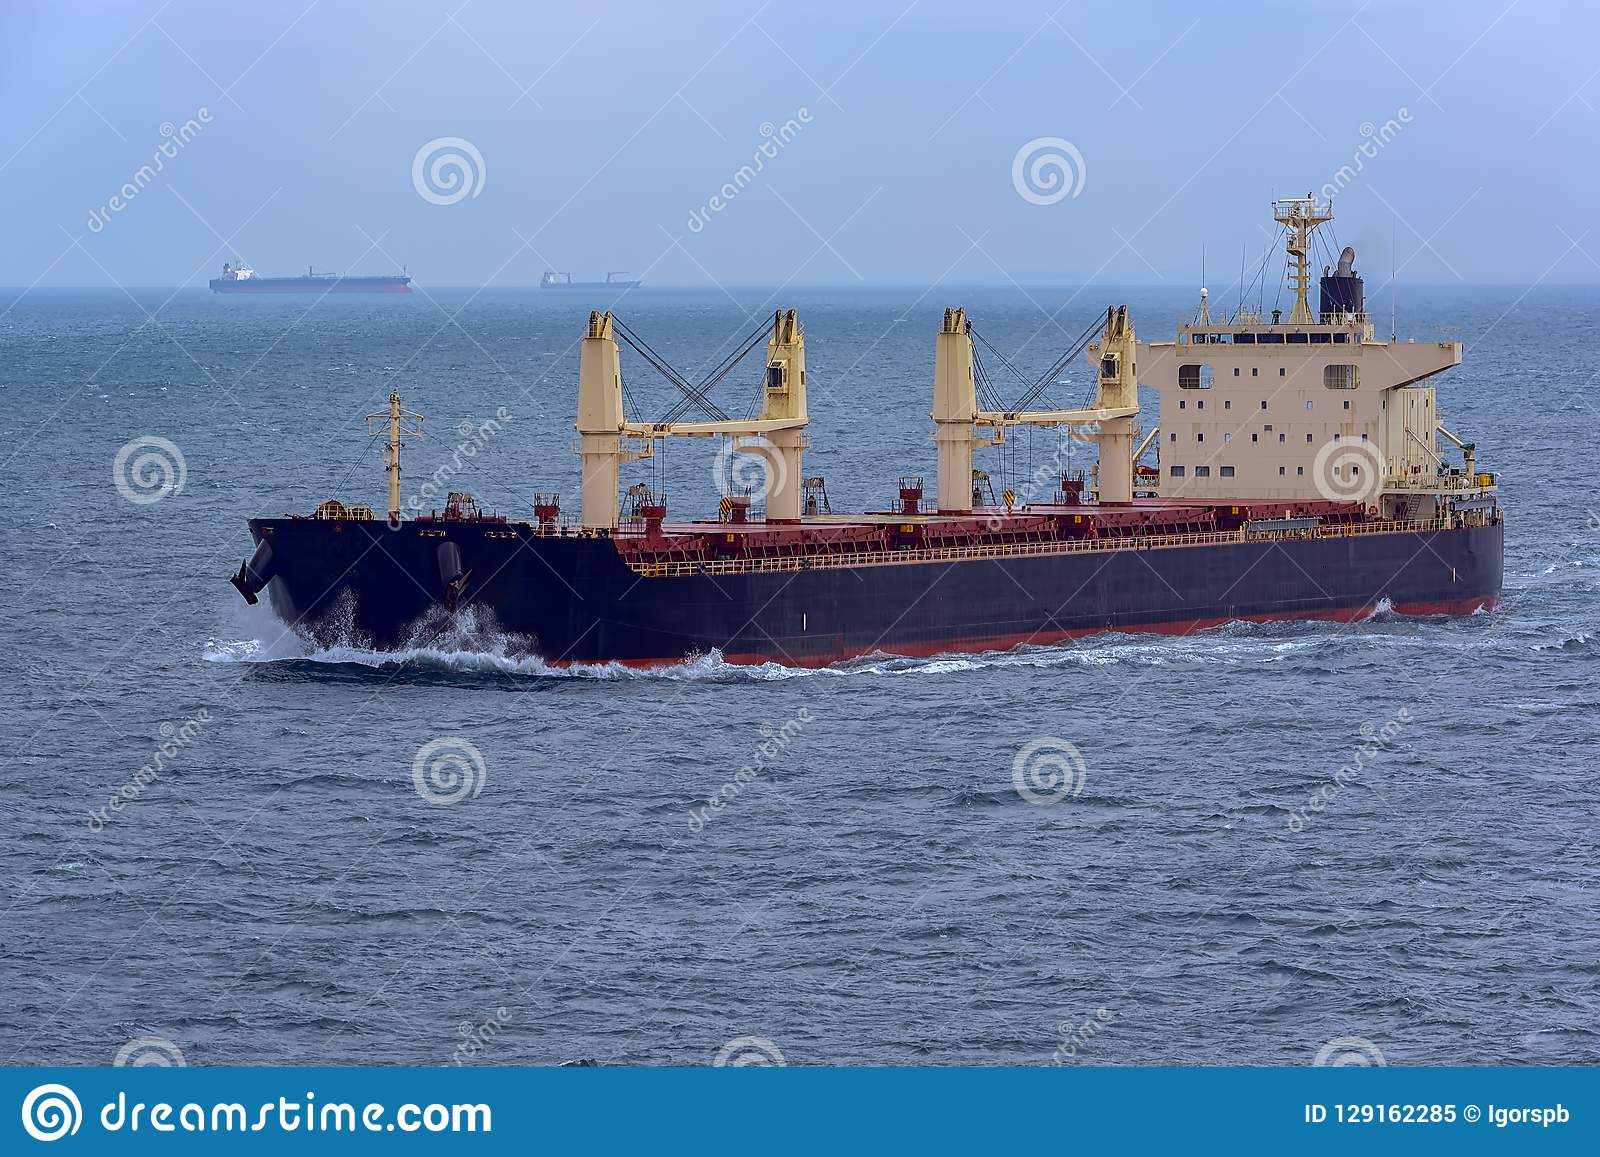 Front view of bulk carrier vessel.